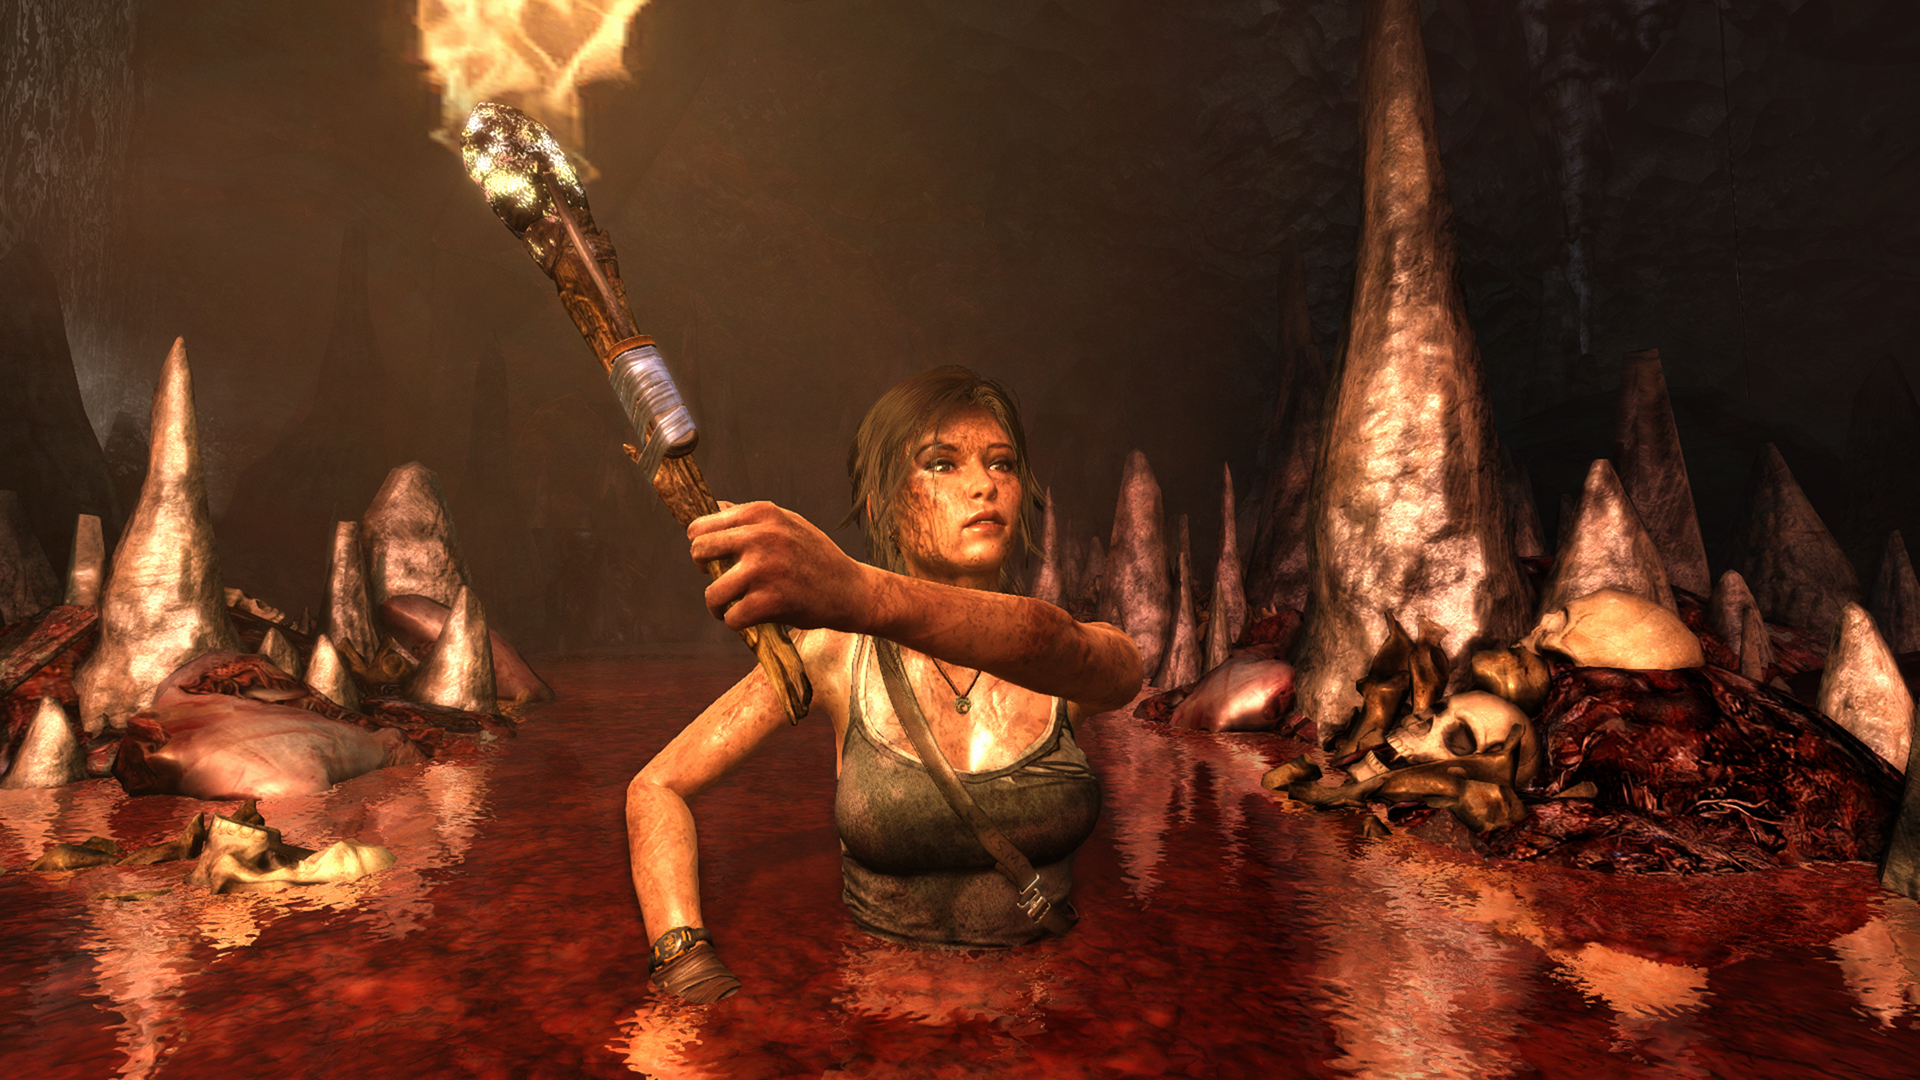 Lara Croft exploring a bloody and sinister cave.